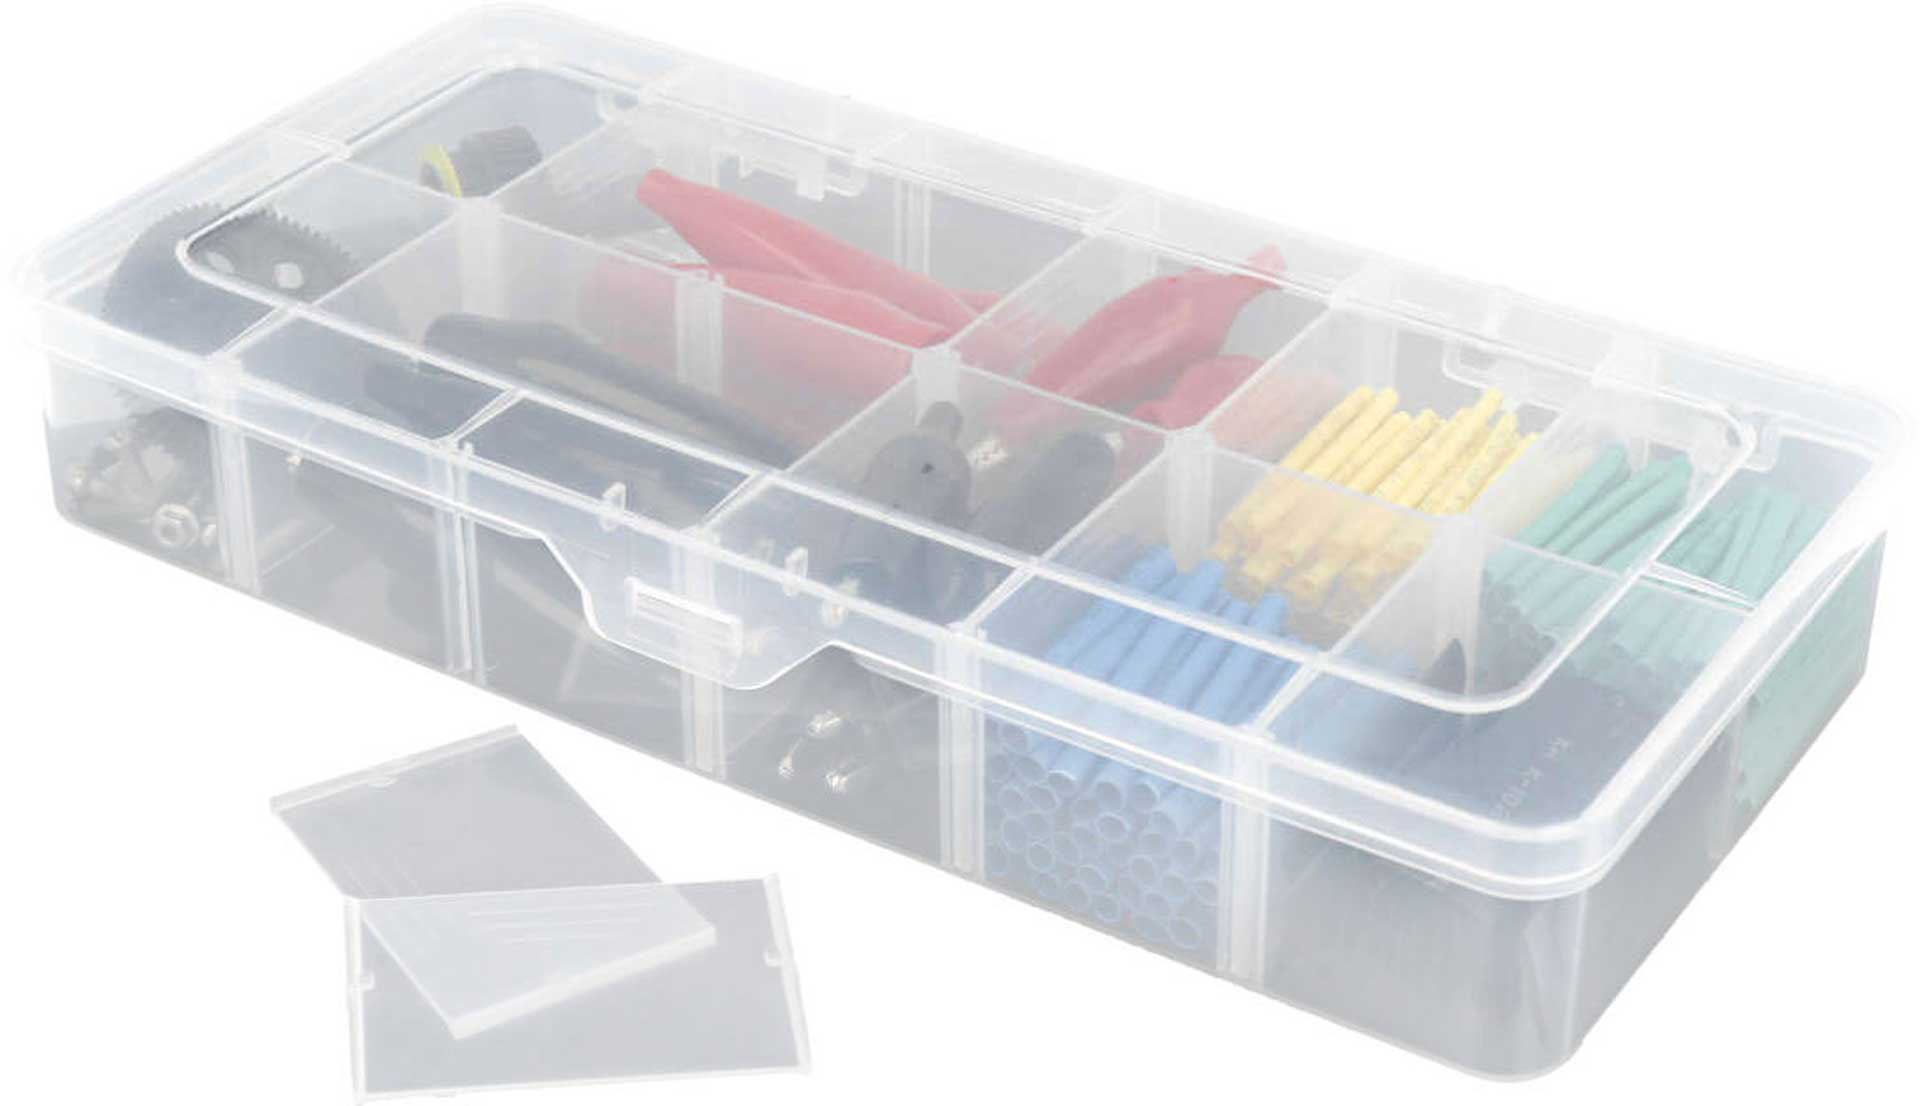 ROBITRONIC SORTIERKASTEN 12 COMPARTMENTS 260X125X43,5MM VARIABLE